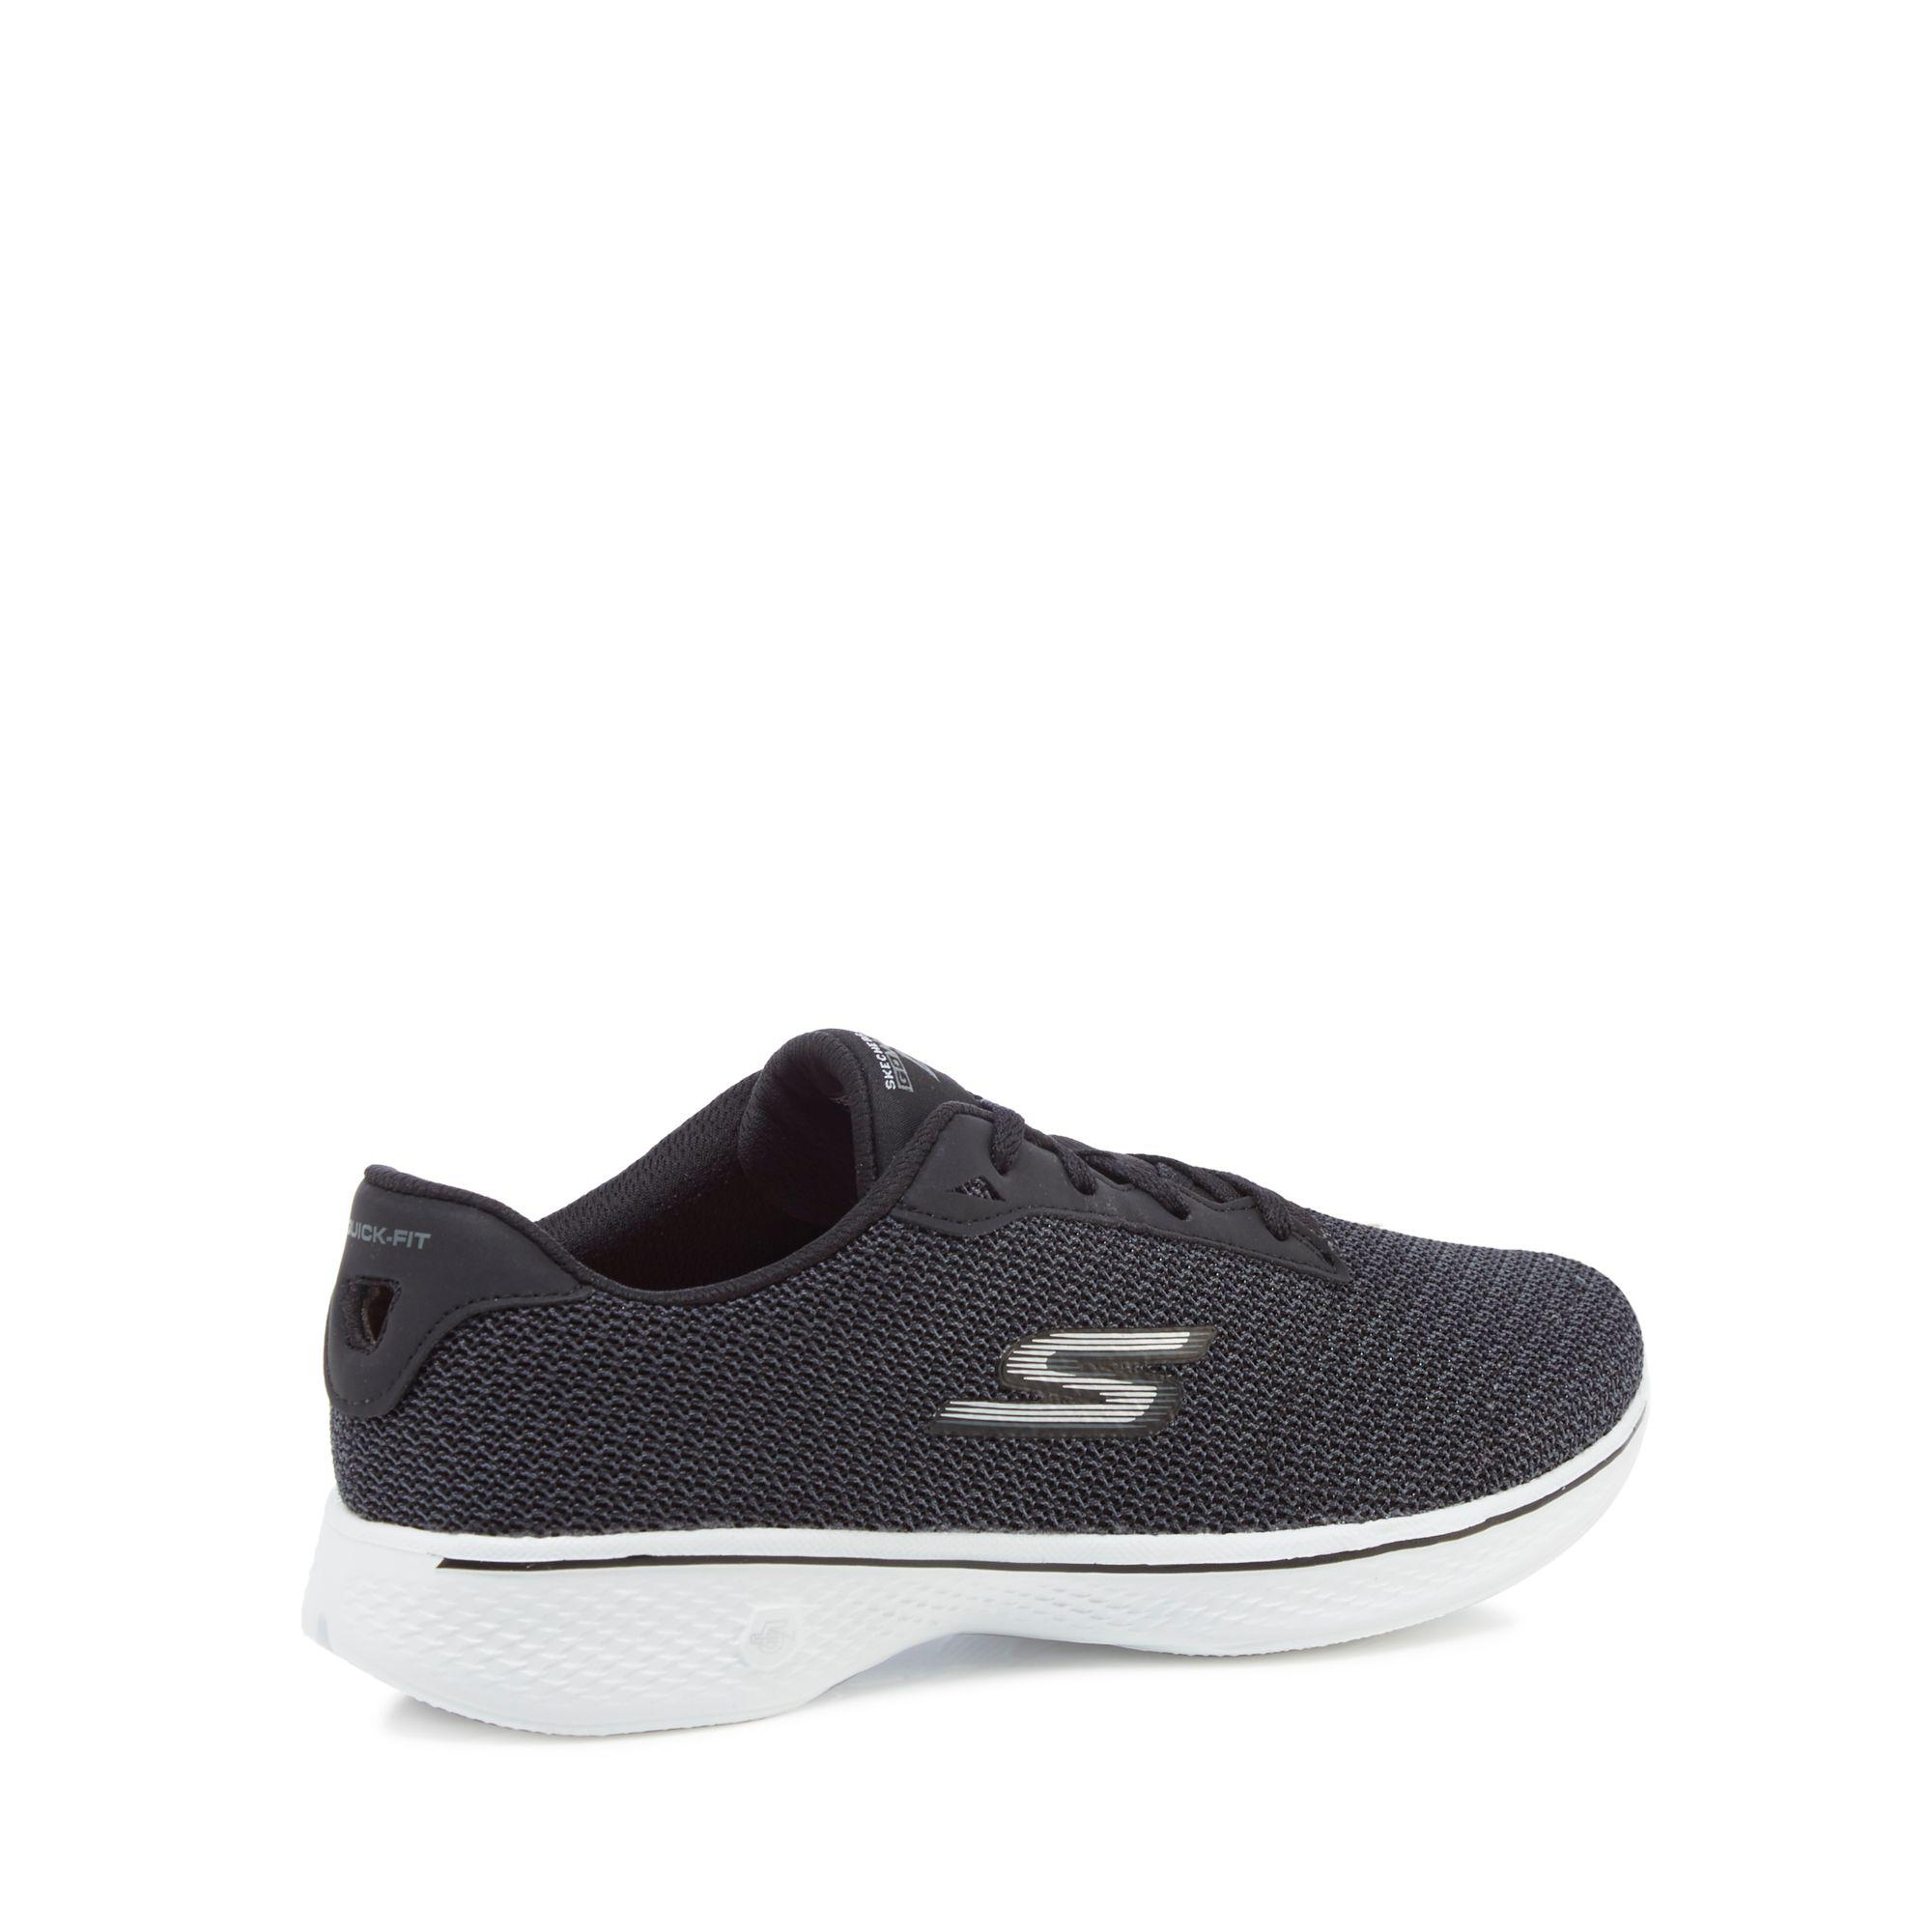 sale store free shipping shop for Black 'Go Walk 4 Glorify' trainers excellent online cheap for nice affordable online hAJA1wU